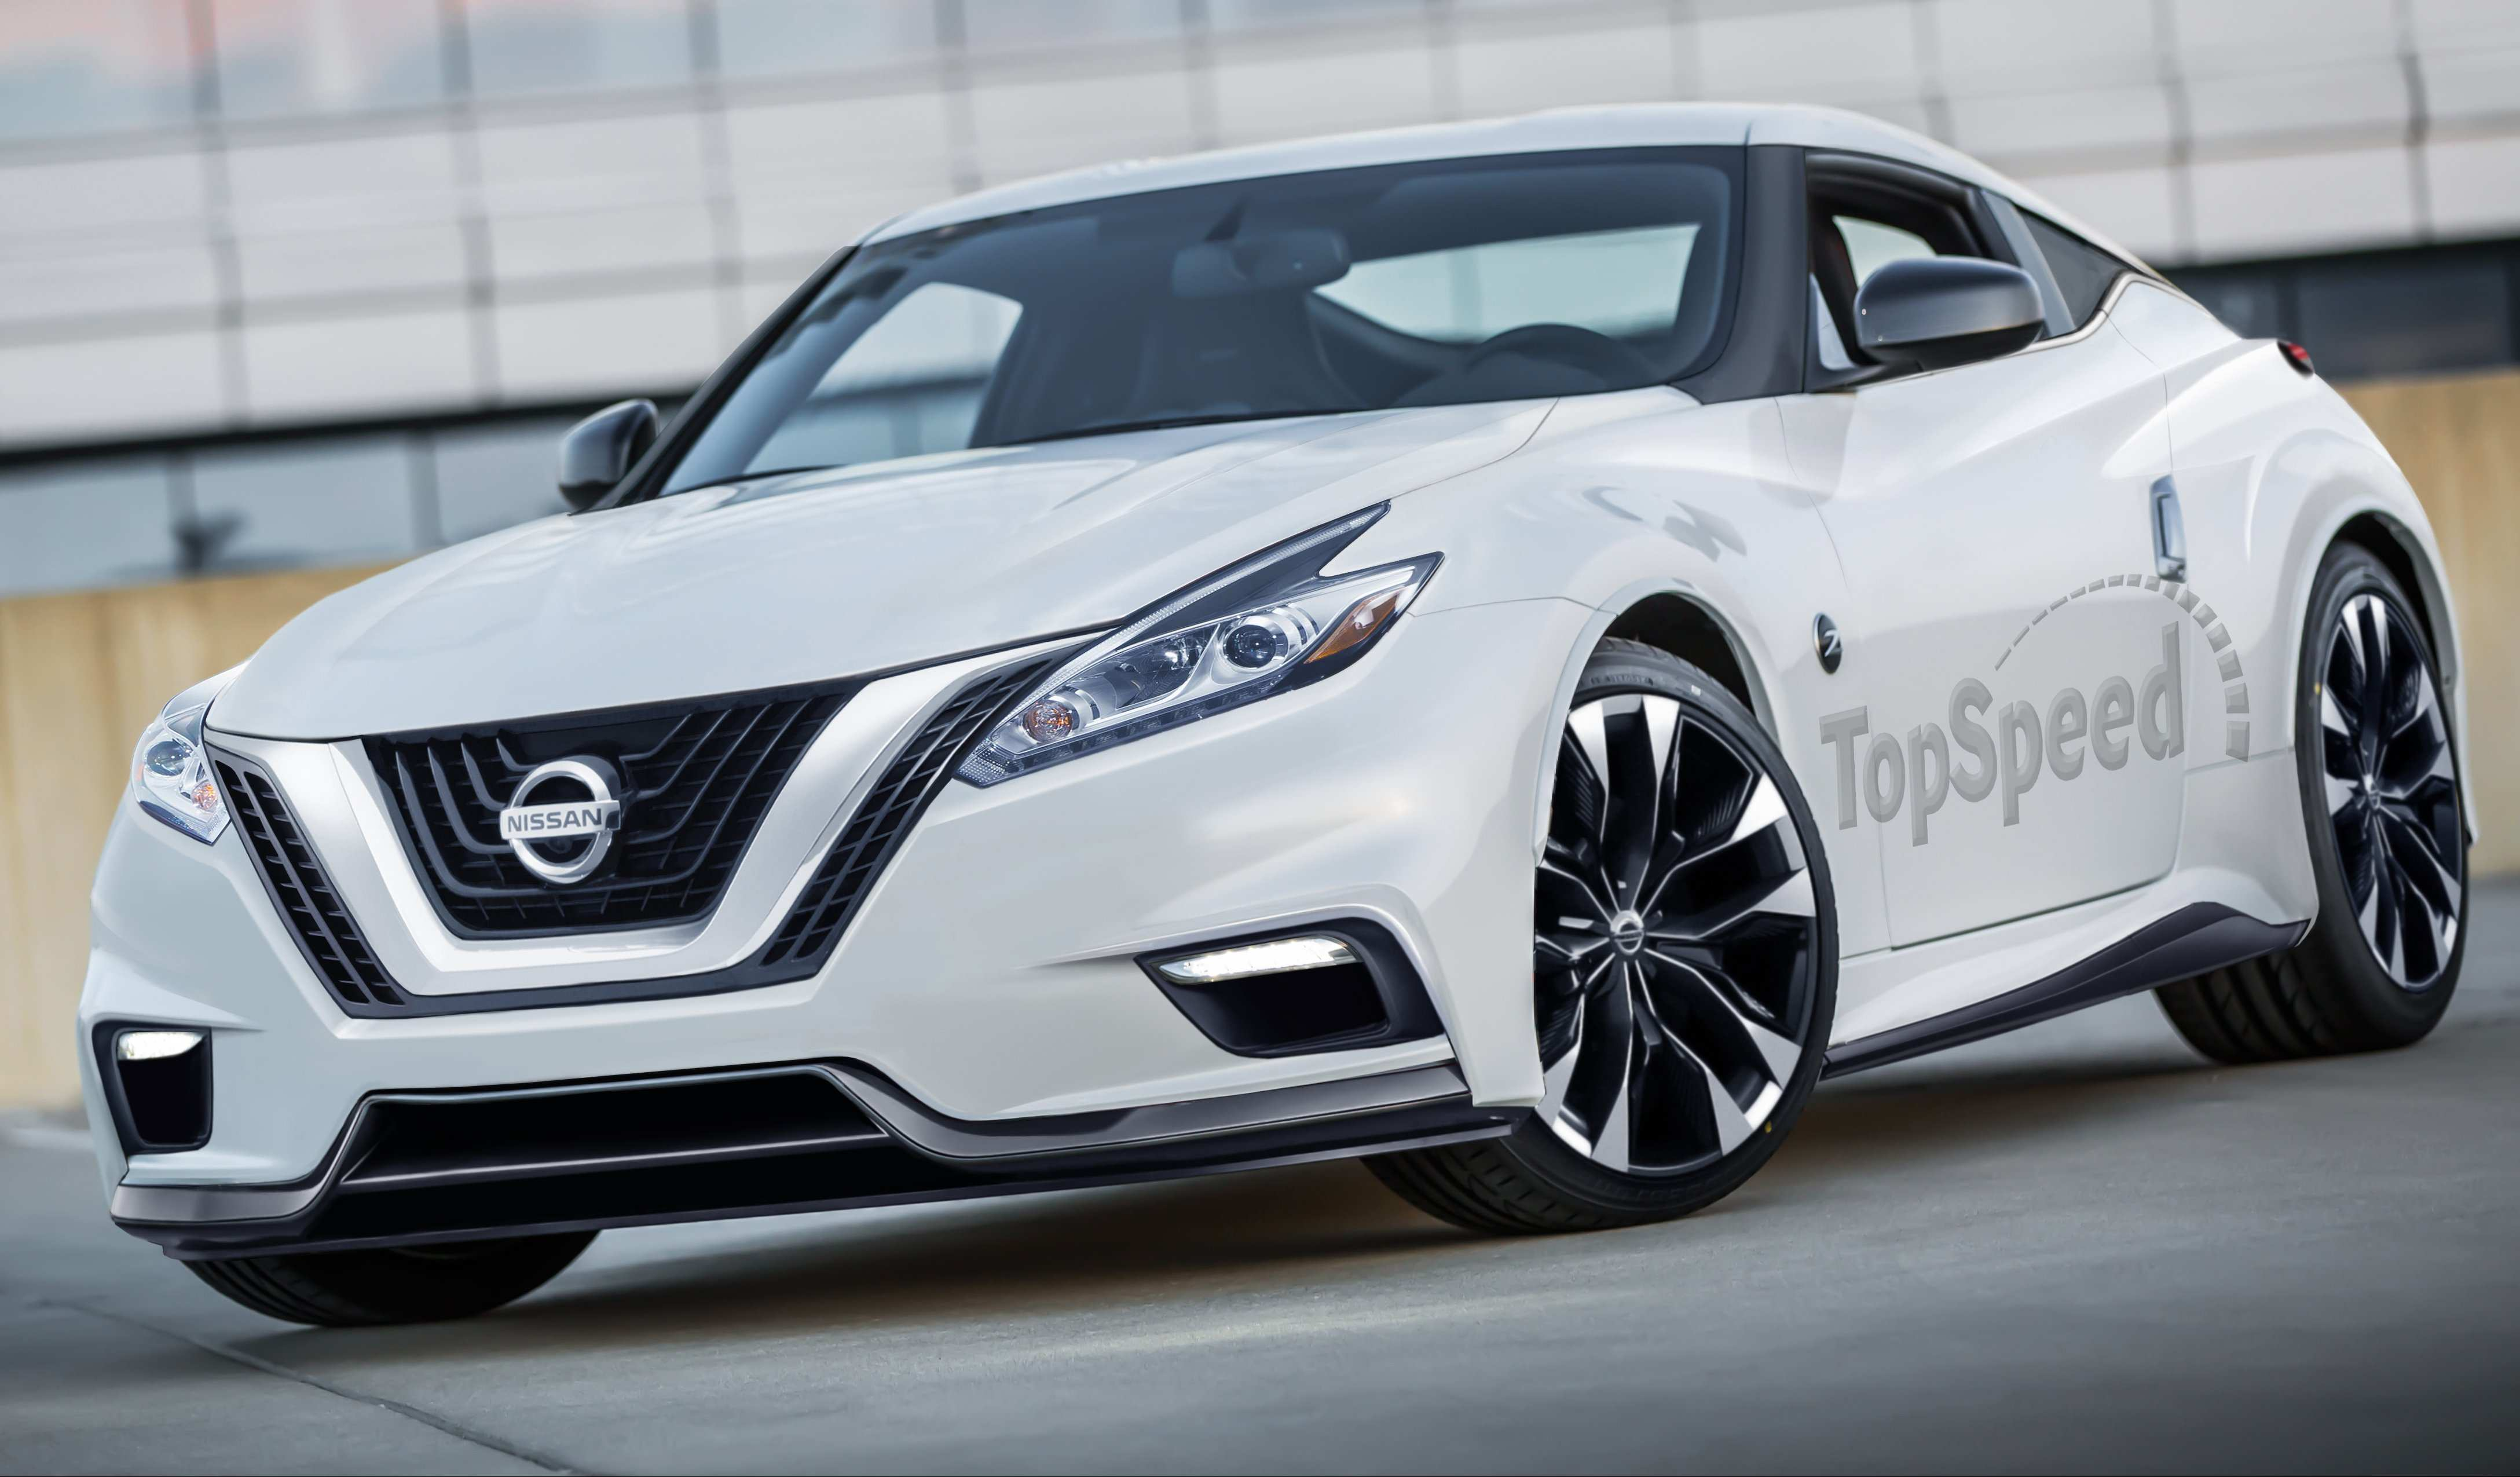 91 Best Review Nissan Z Car 2020 Interior with Nissan Z Car 2020